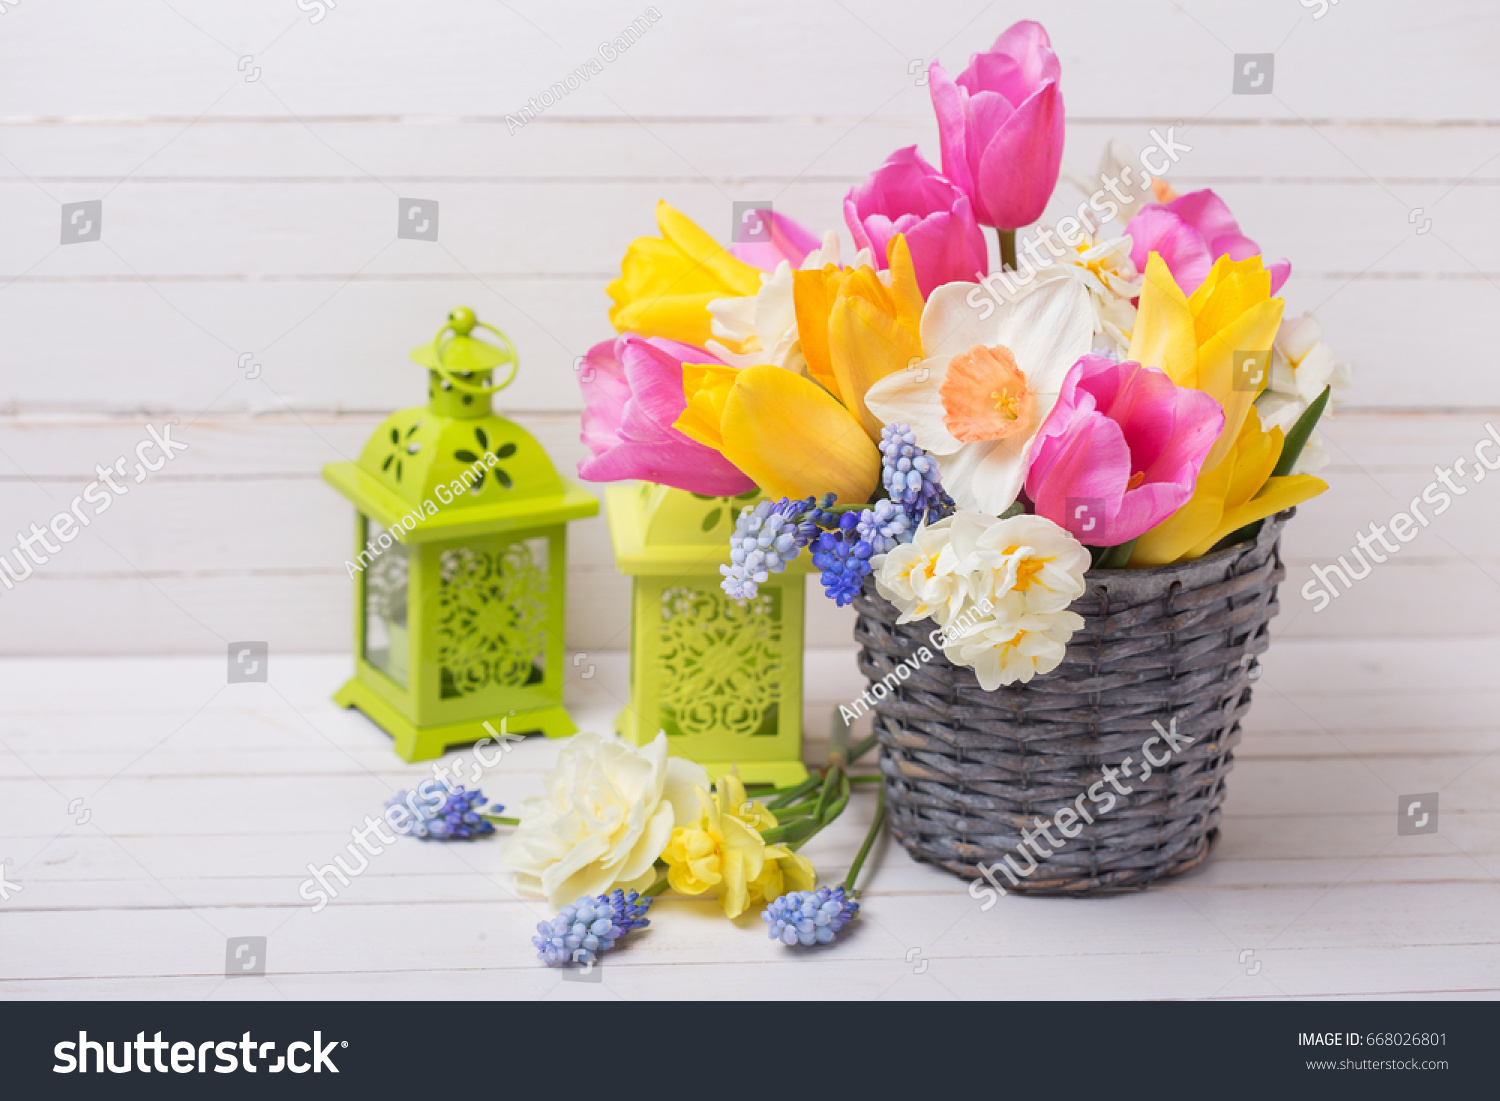 Pink Yellow And White Spring Tulips And Daffodils Flowers In Grey